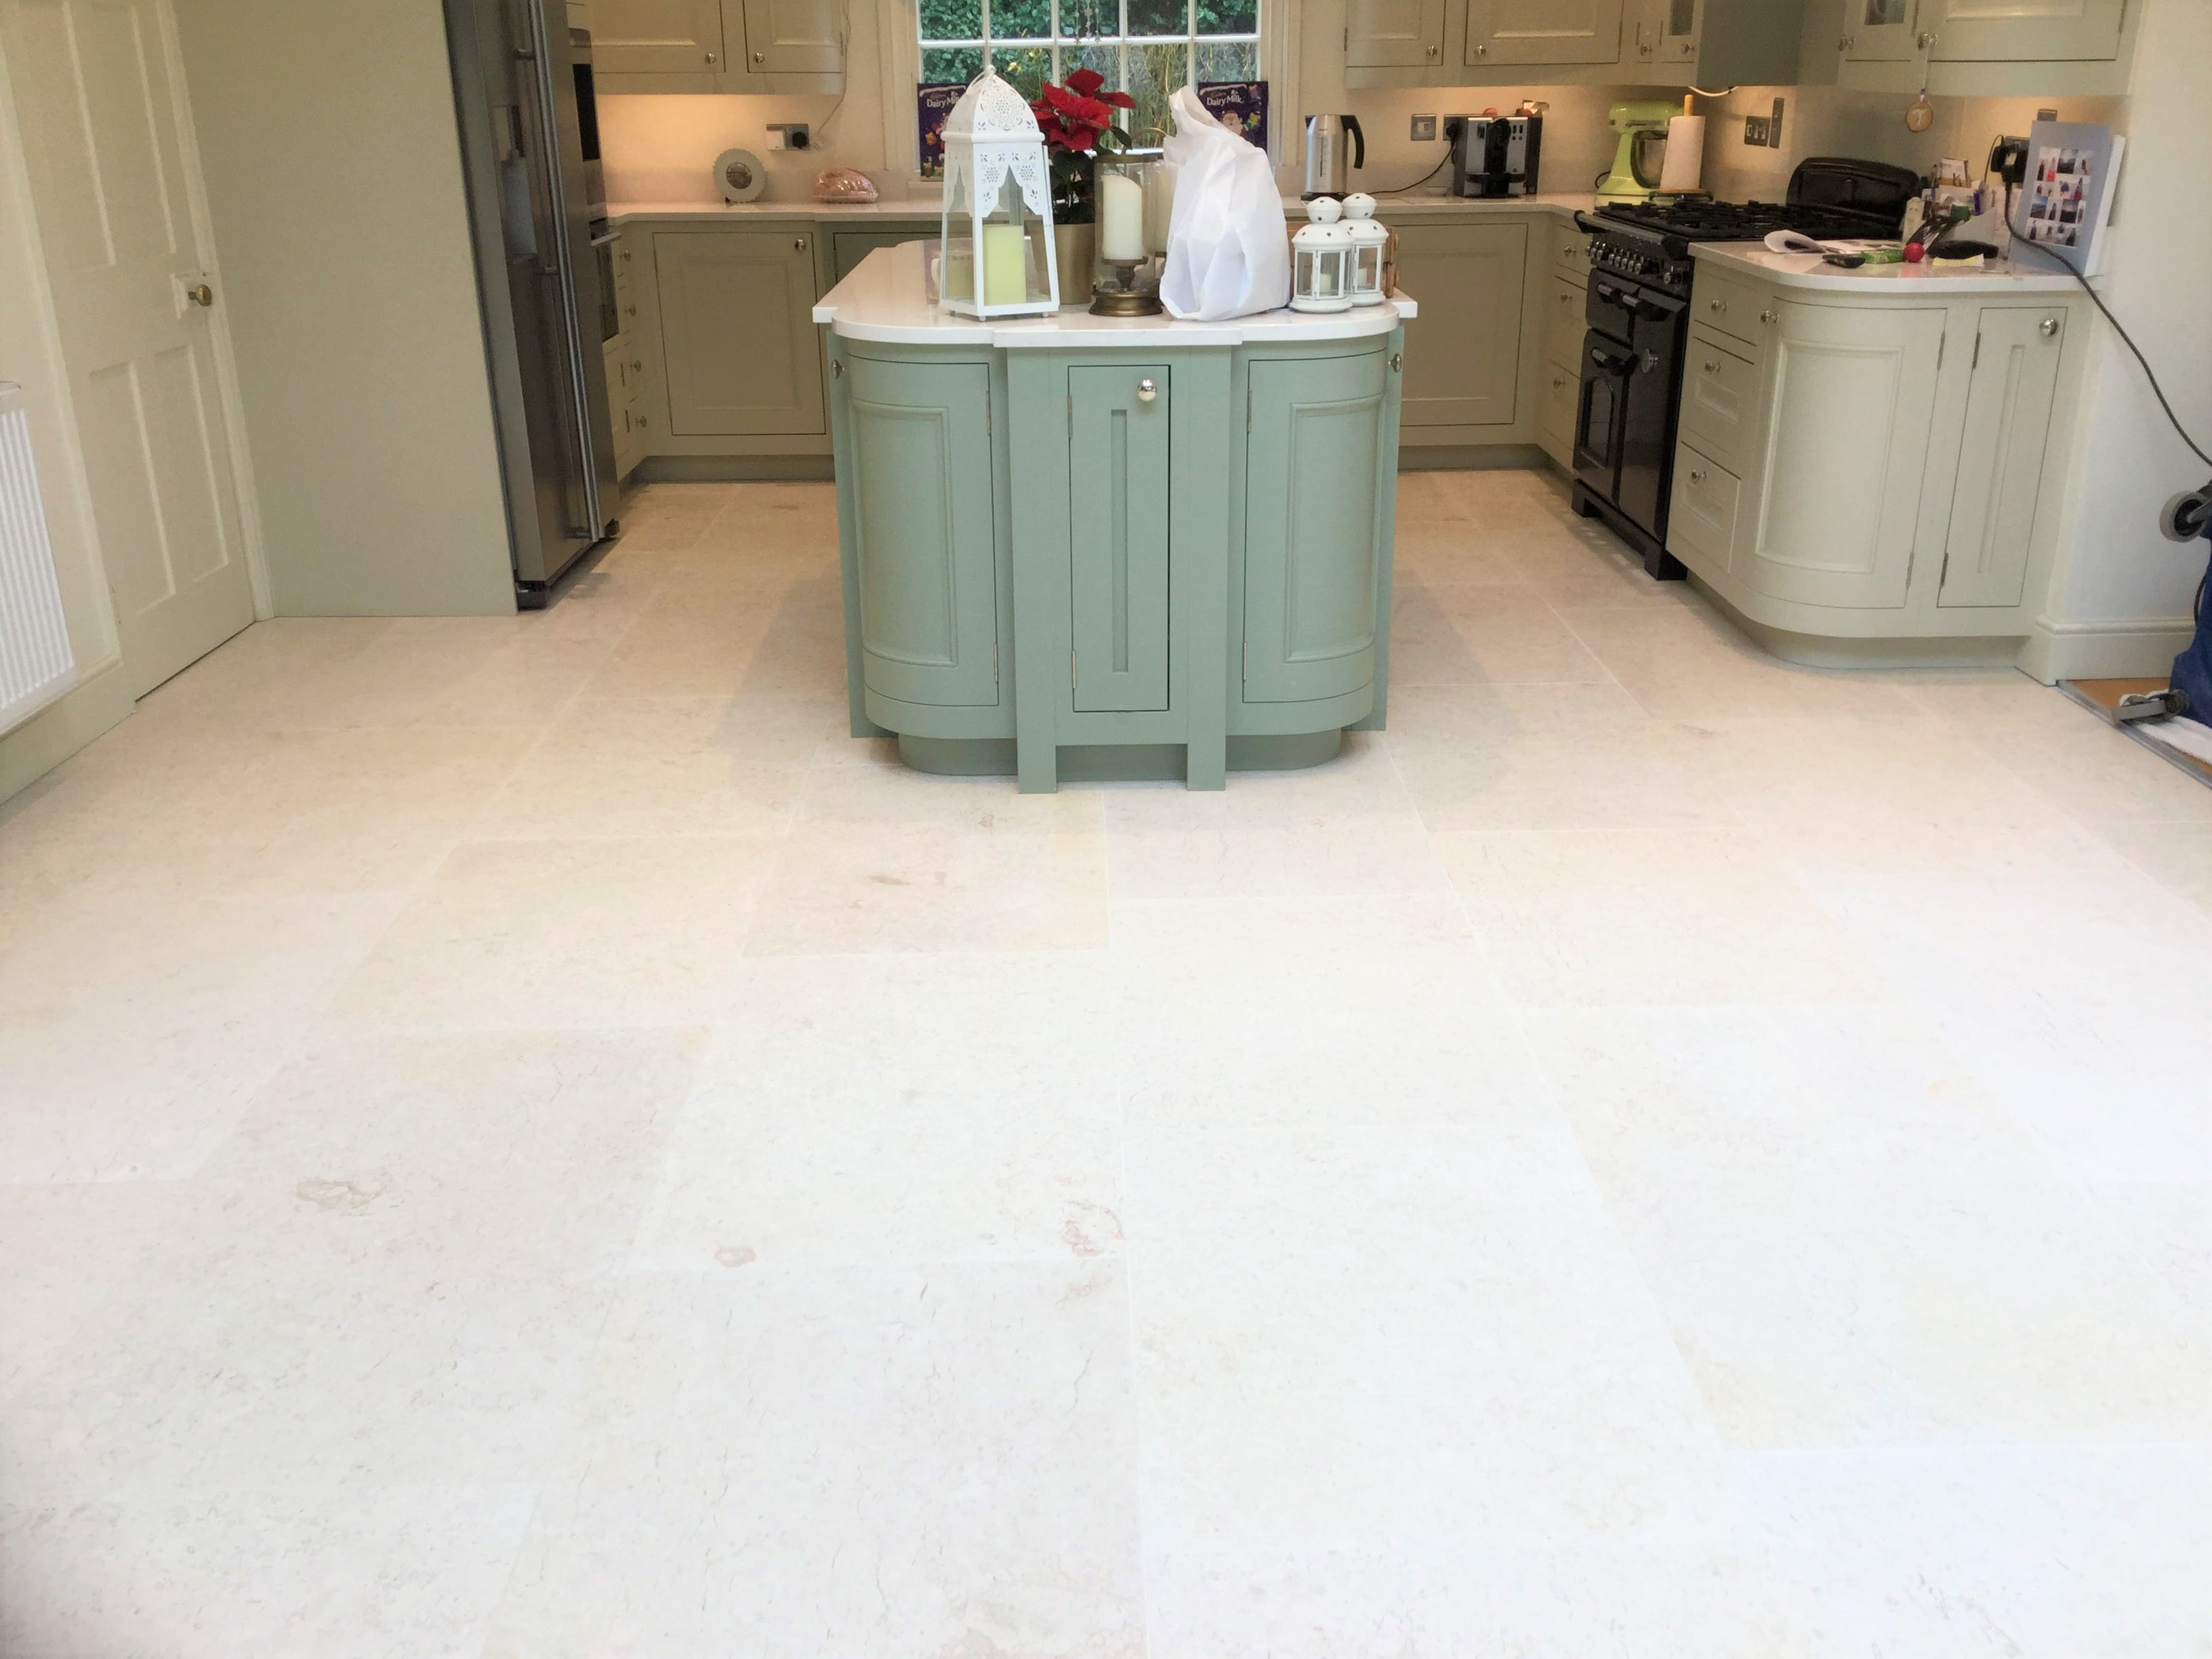 Limestone Tiled Kitchen Floor After Renovation Ecton